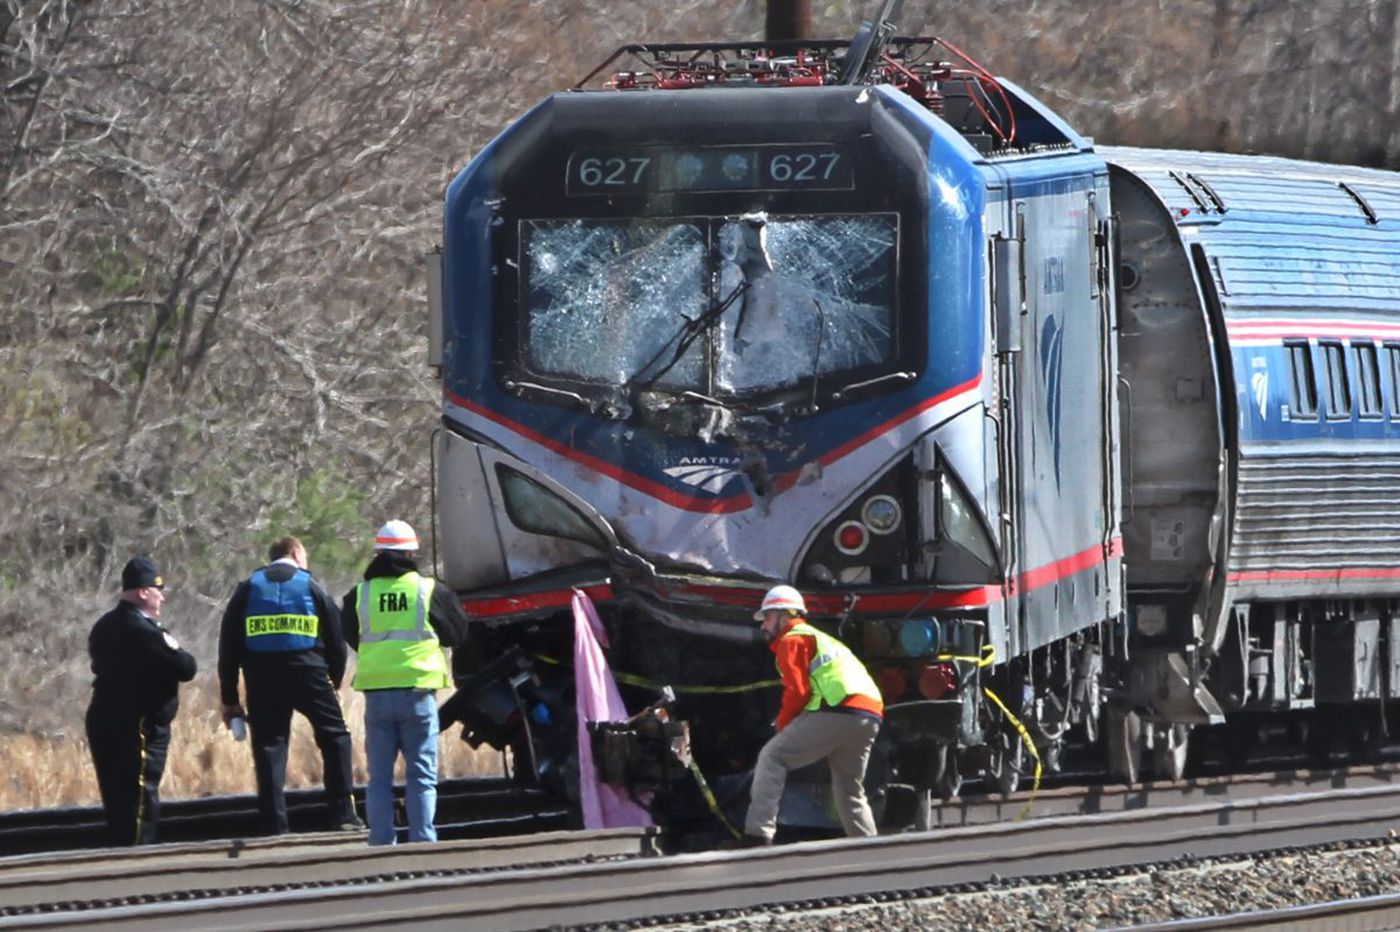 Amtrak's challenge: Fix safety lapses that caused fatal 2016 crash in Chester